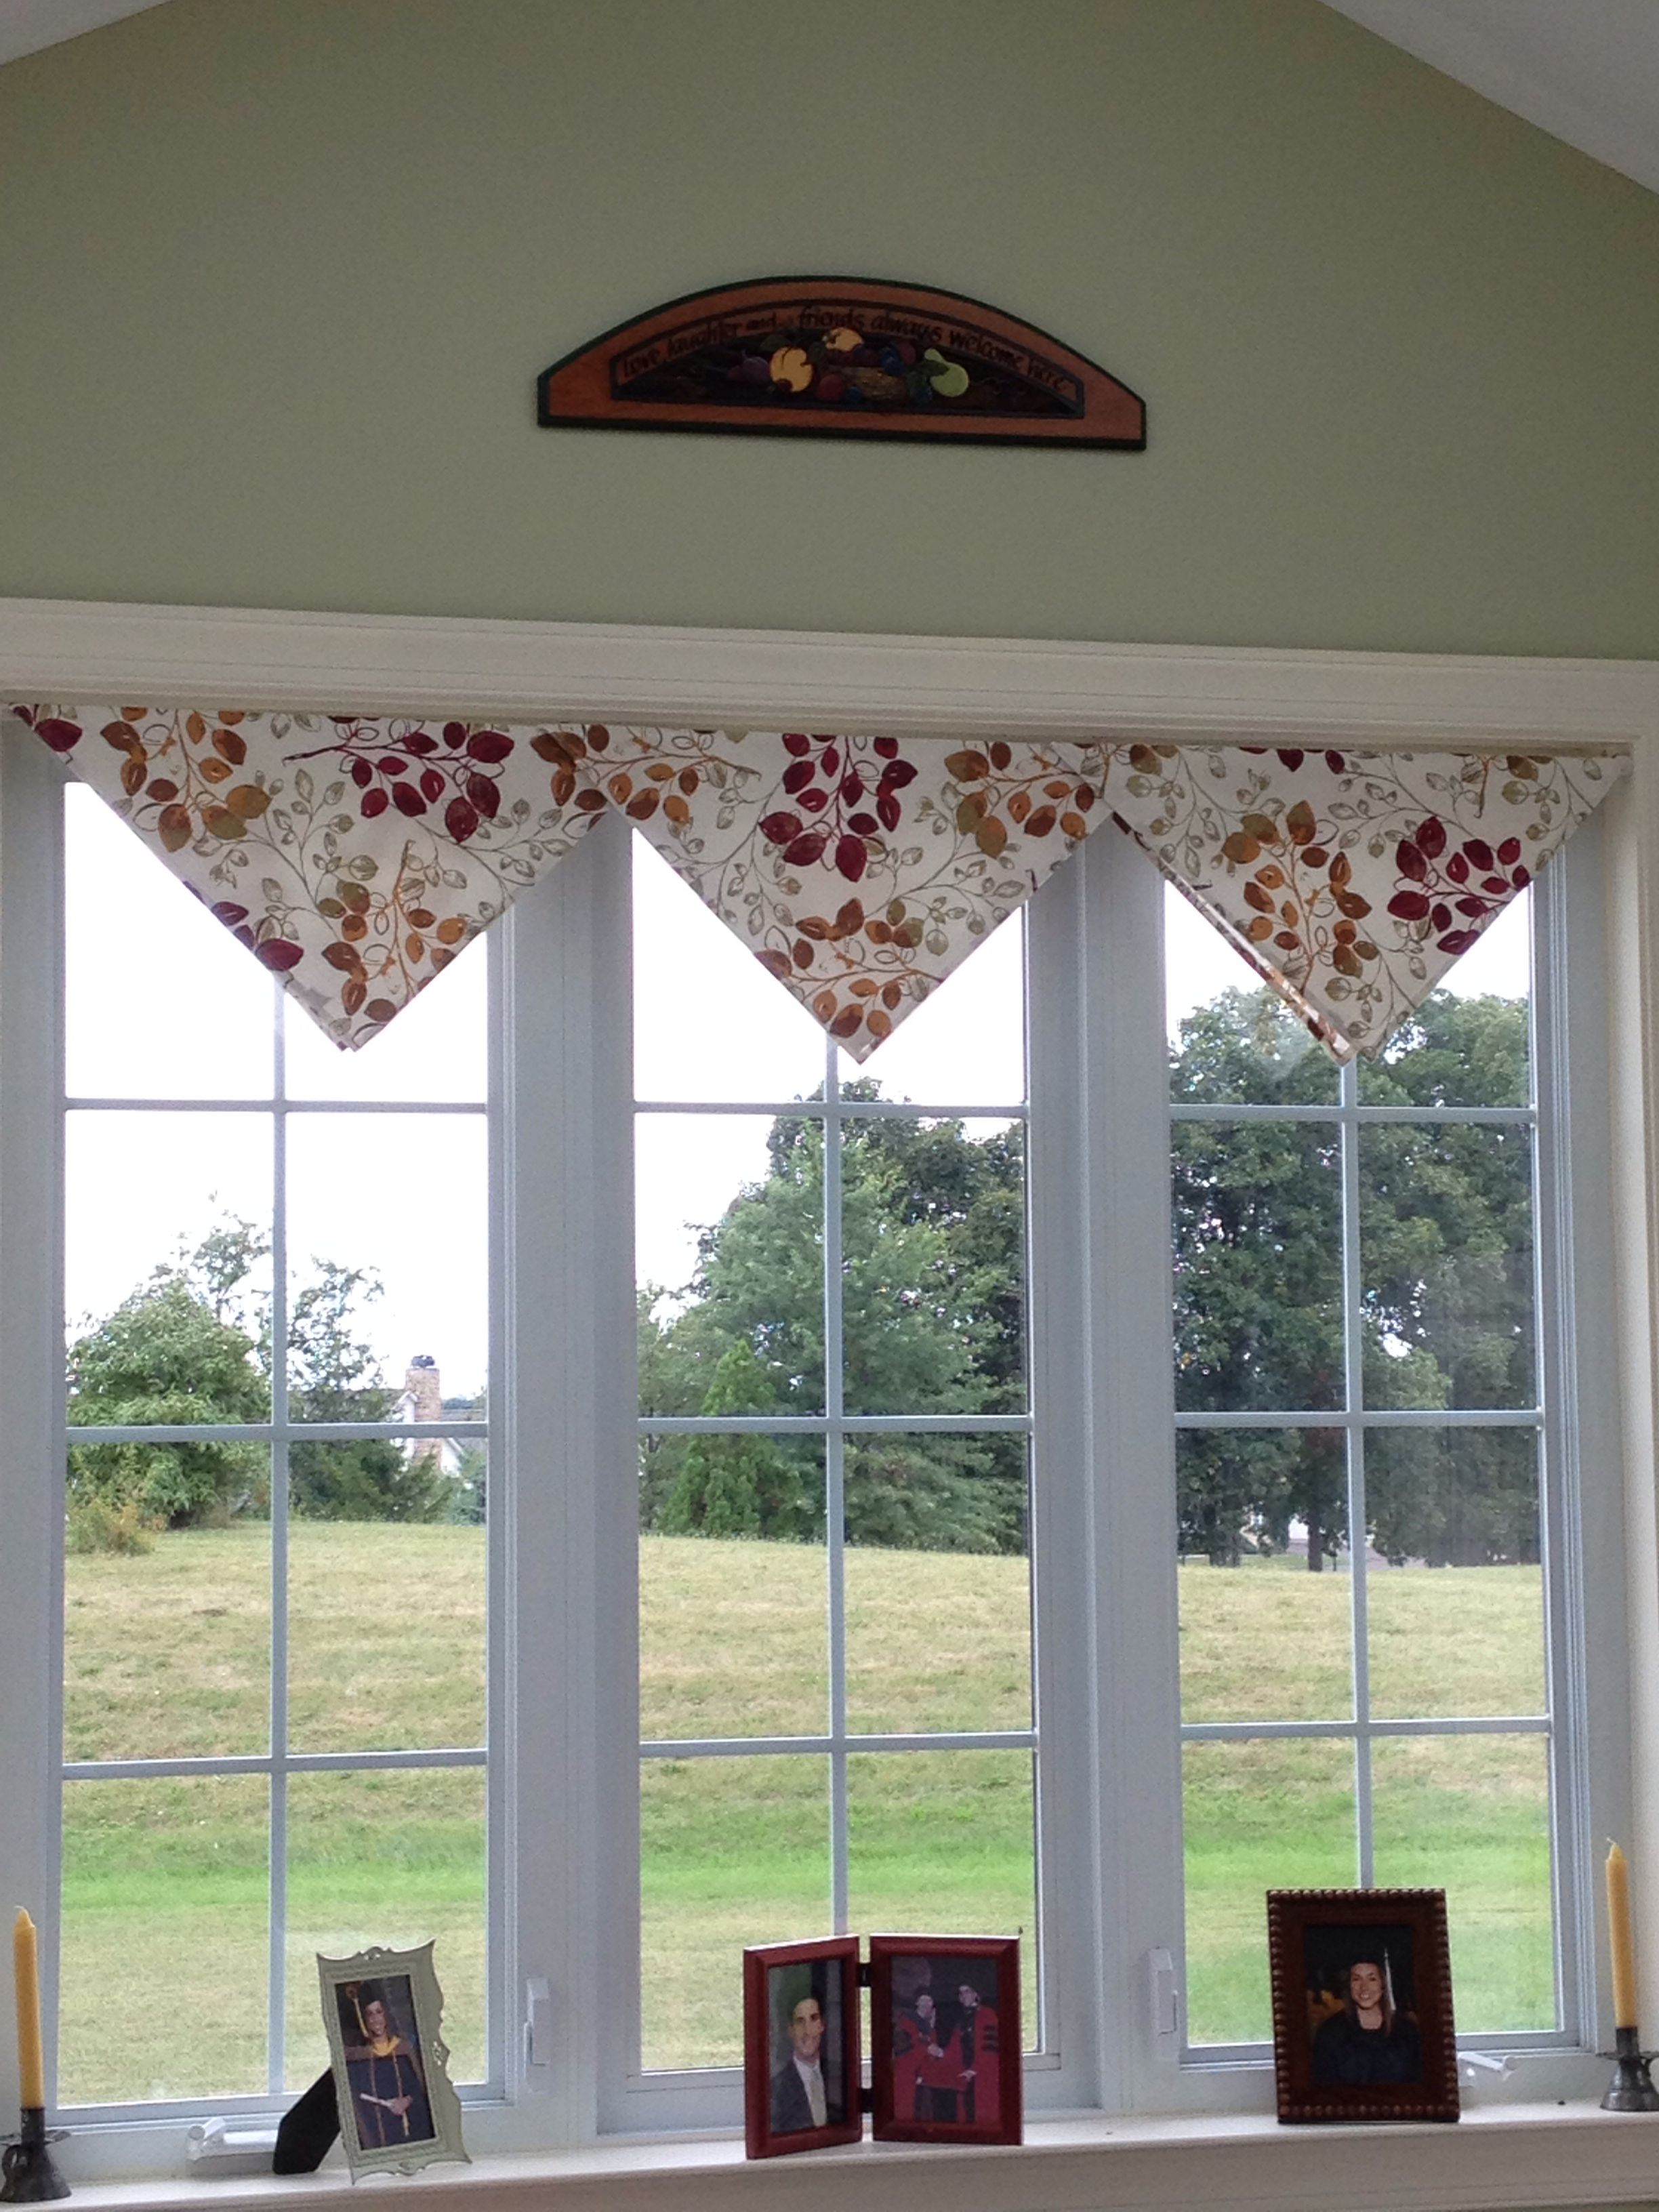 Fast Easy And Economical Idea For Valances I Used Large